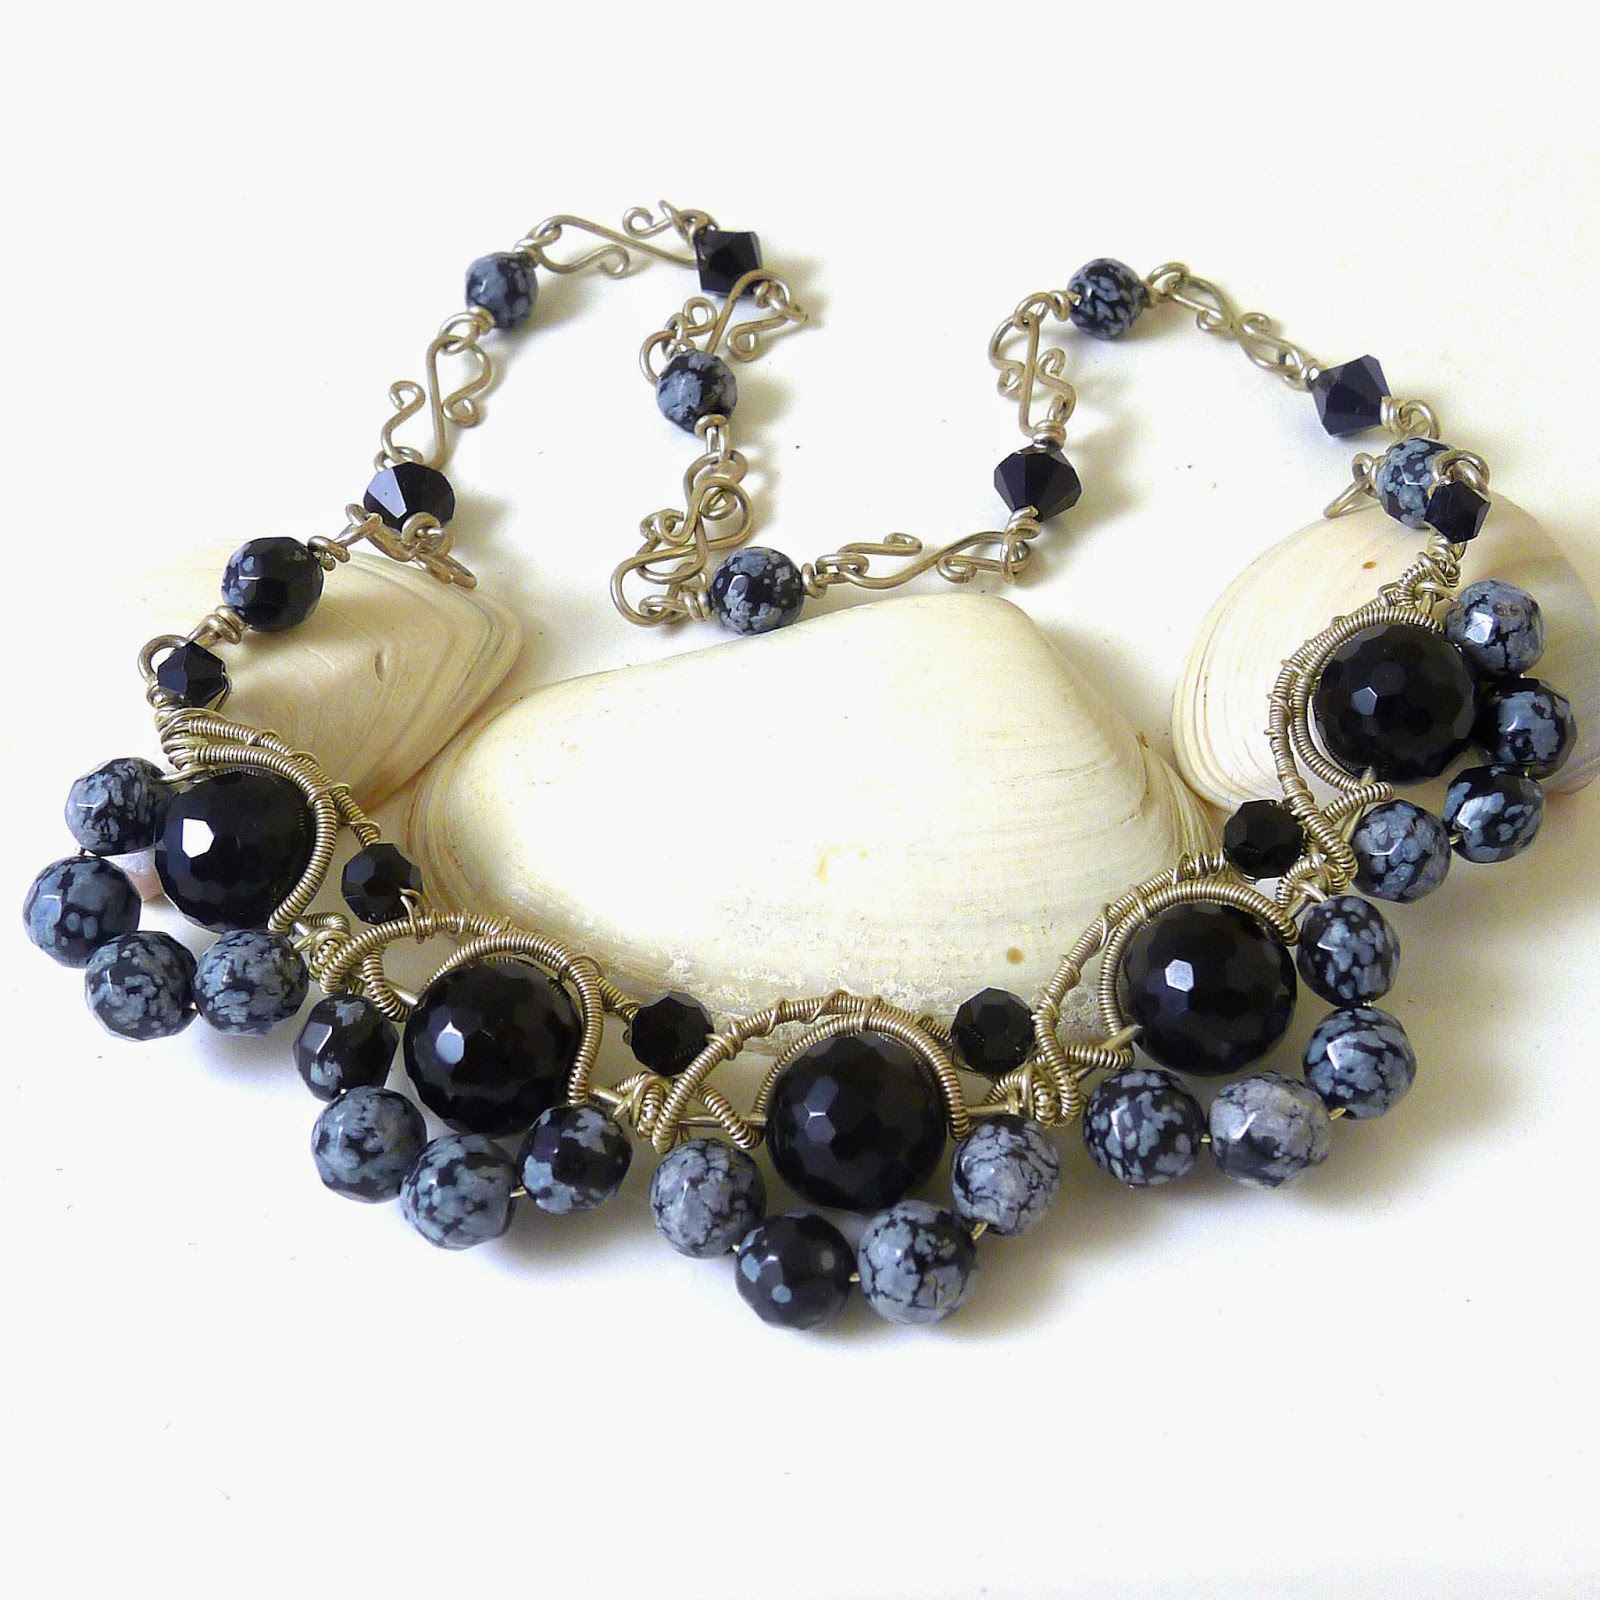 http://www.shazzabethcreations.co.nz/#!product/prd1/2228333761/onyx-and-snowflake-obsidian-necklace